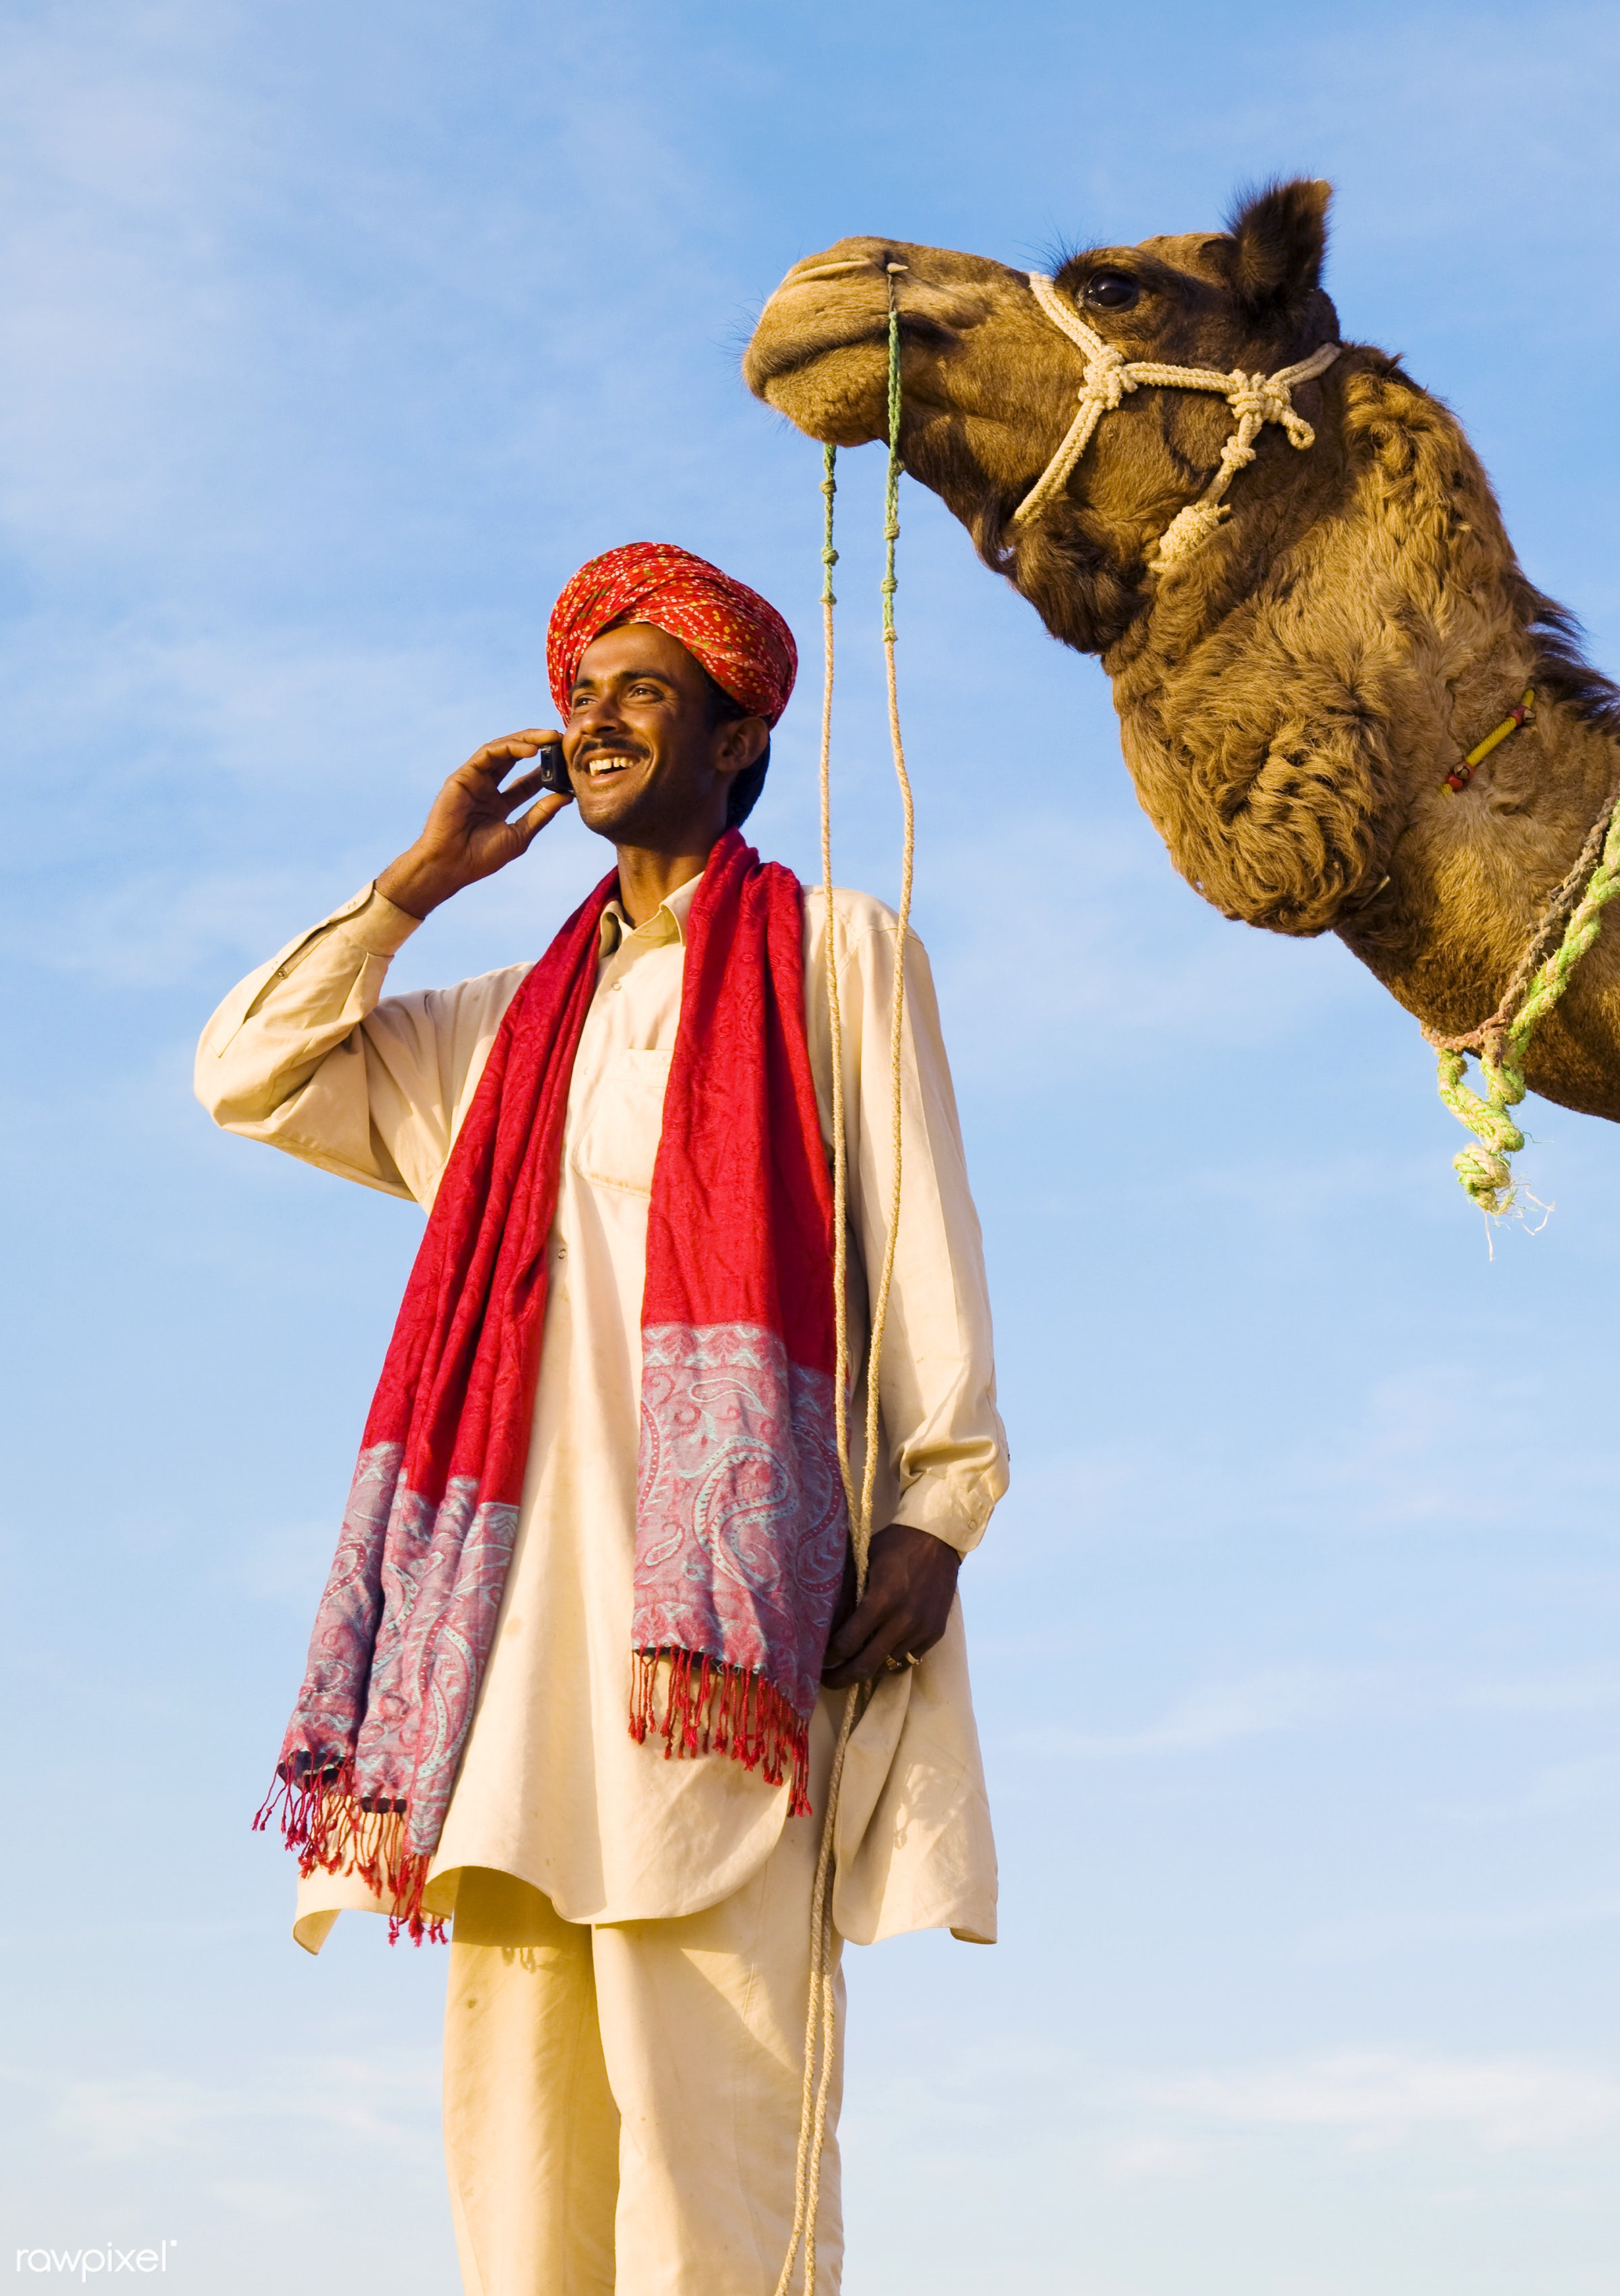 Indian man with camel making a call - asian, animal themes, asia, beauty in nature, business, businessman, camel, cellphone...